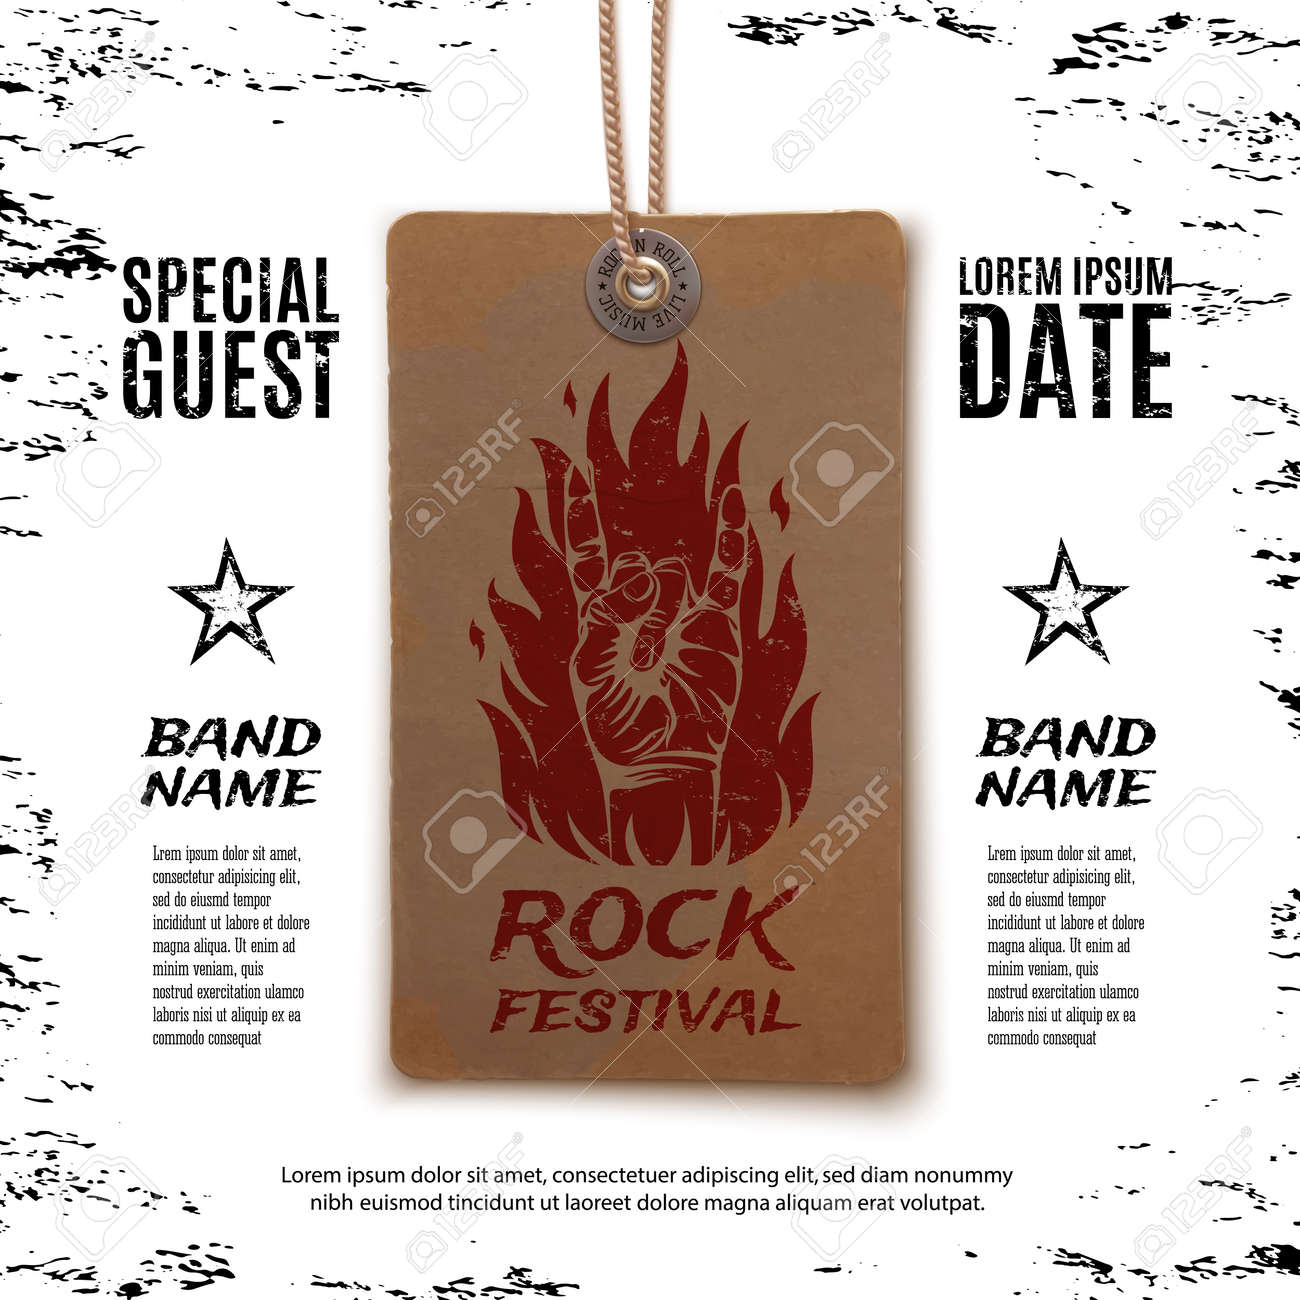 Rock n roll poster design - Grunge Rock Festival Poster With Rock N Roll Sign And Fire On Vintage Price